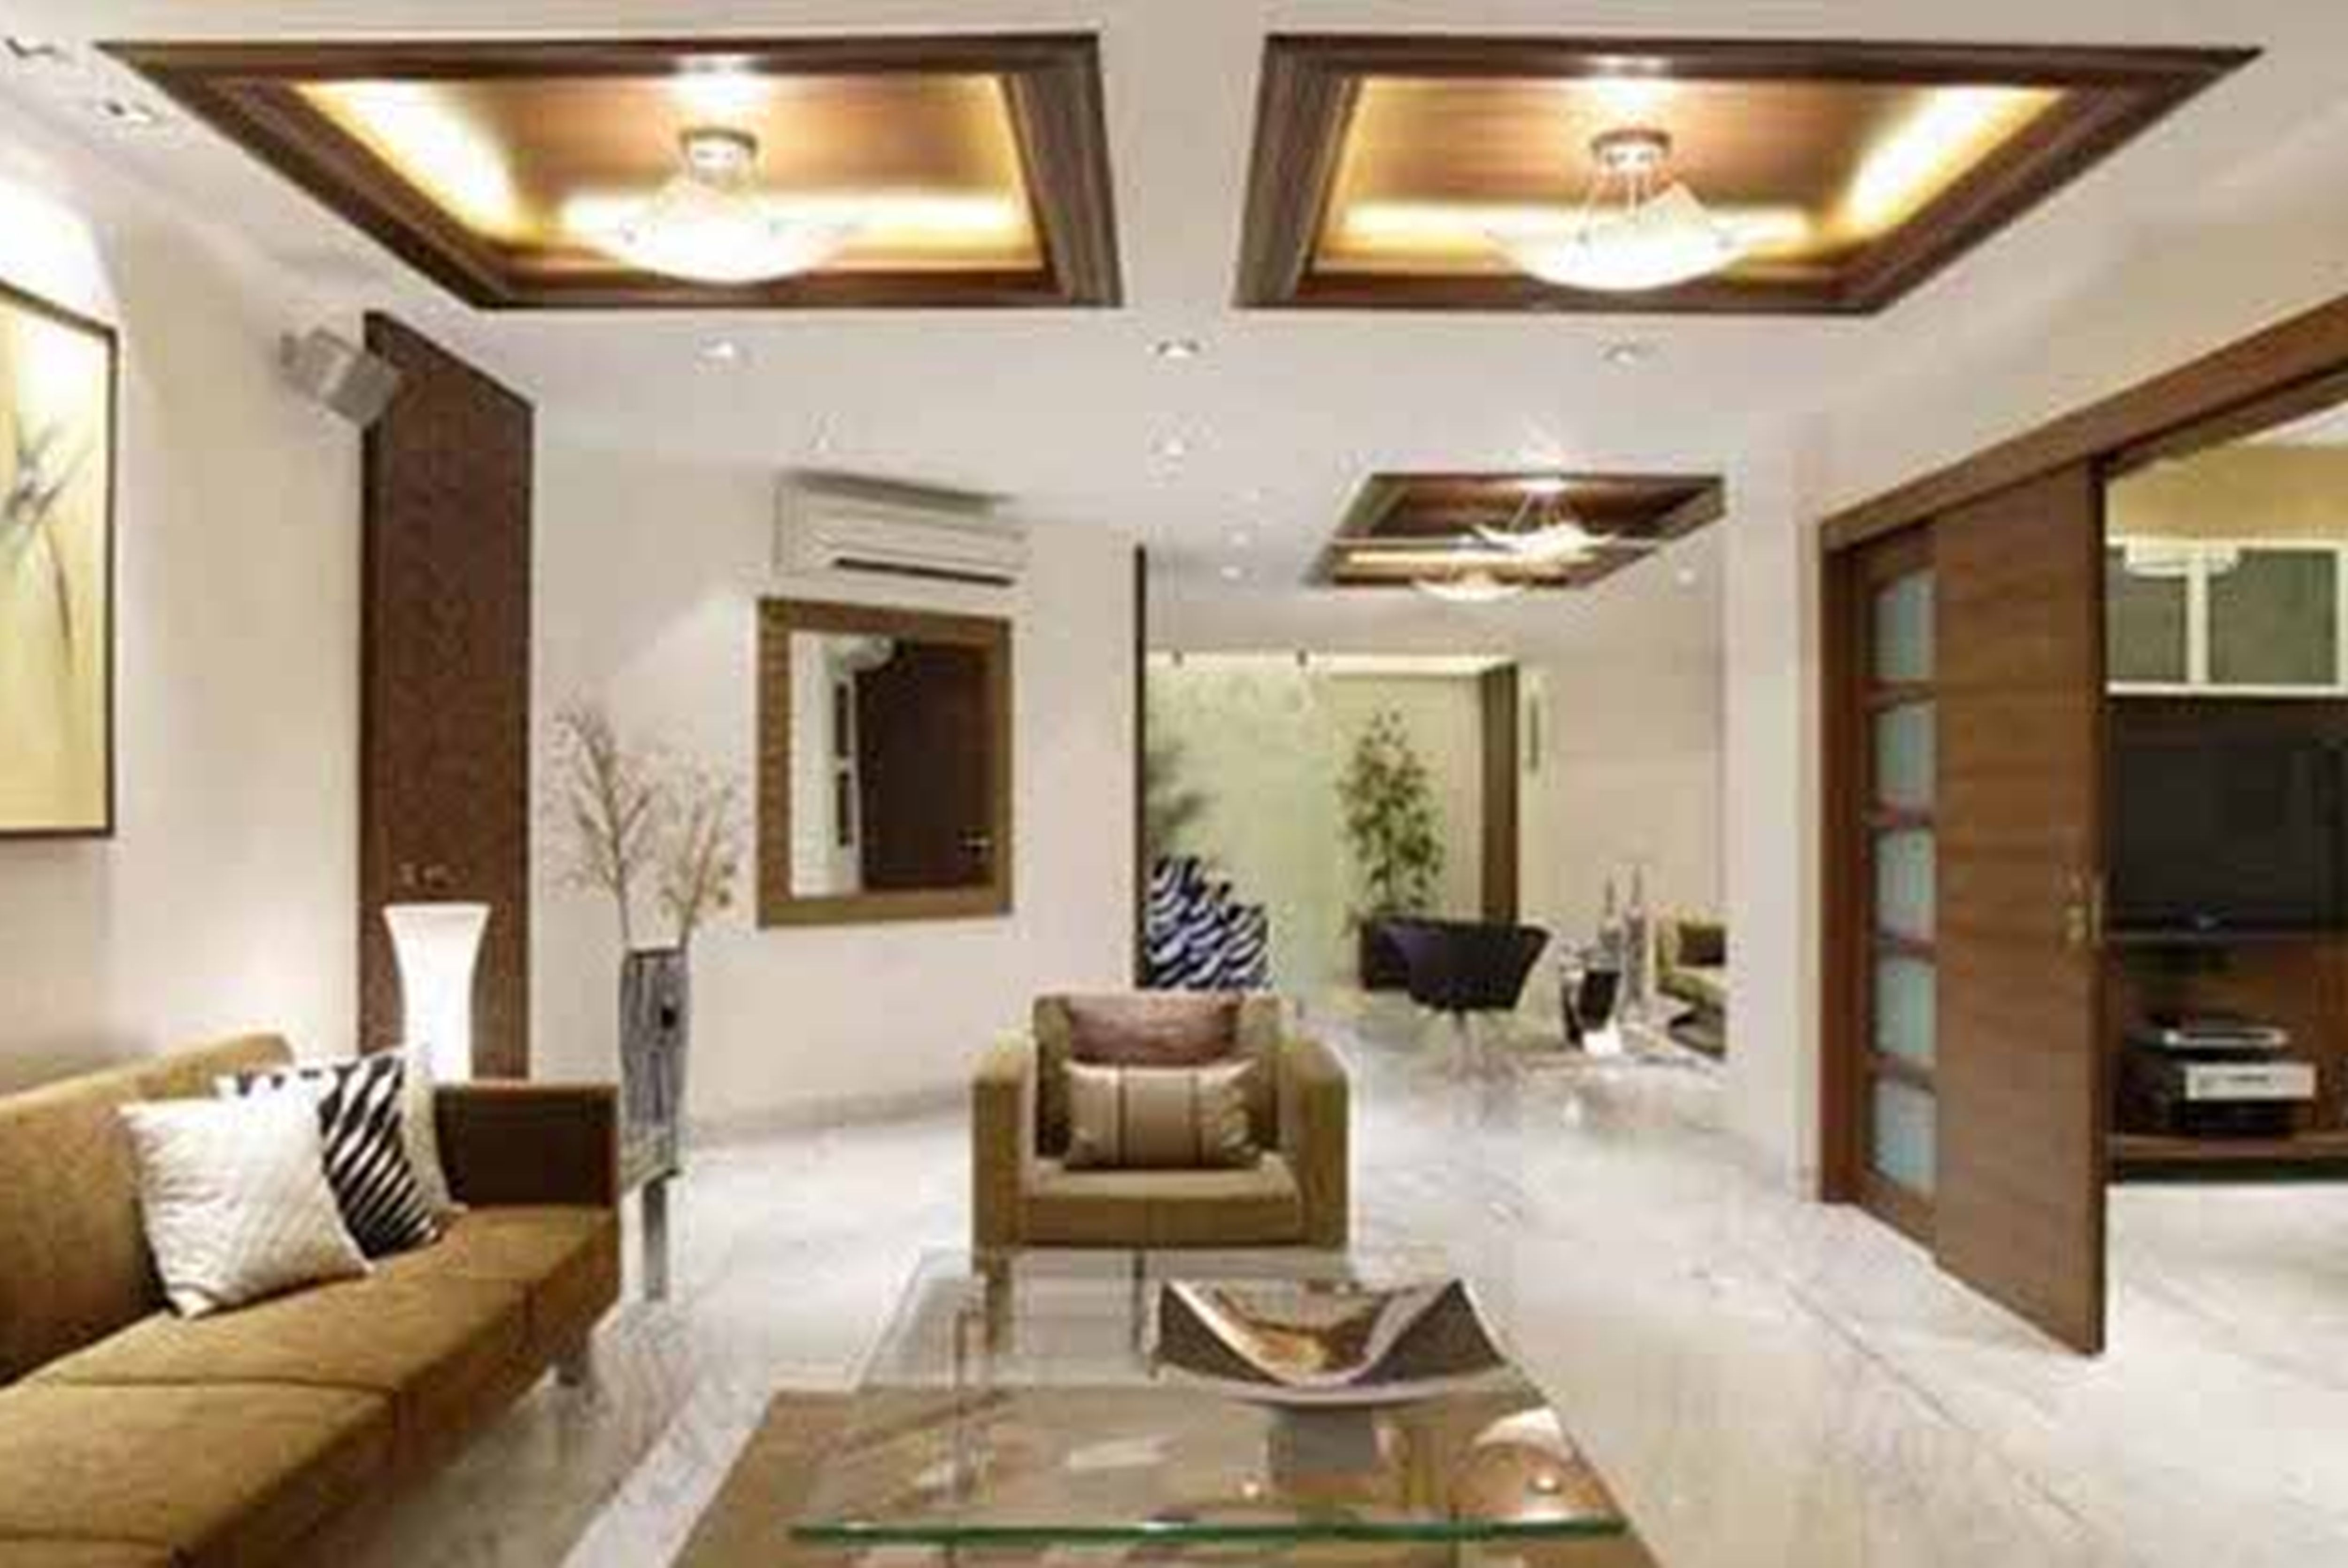 Affordable Interior Design Ideas - Simple Affordable Home ...